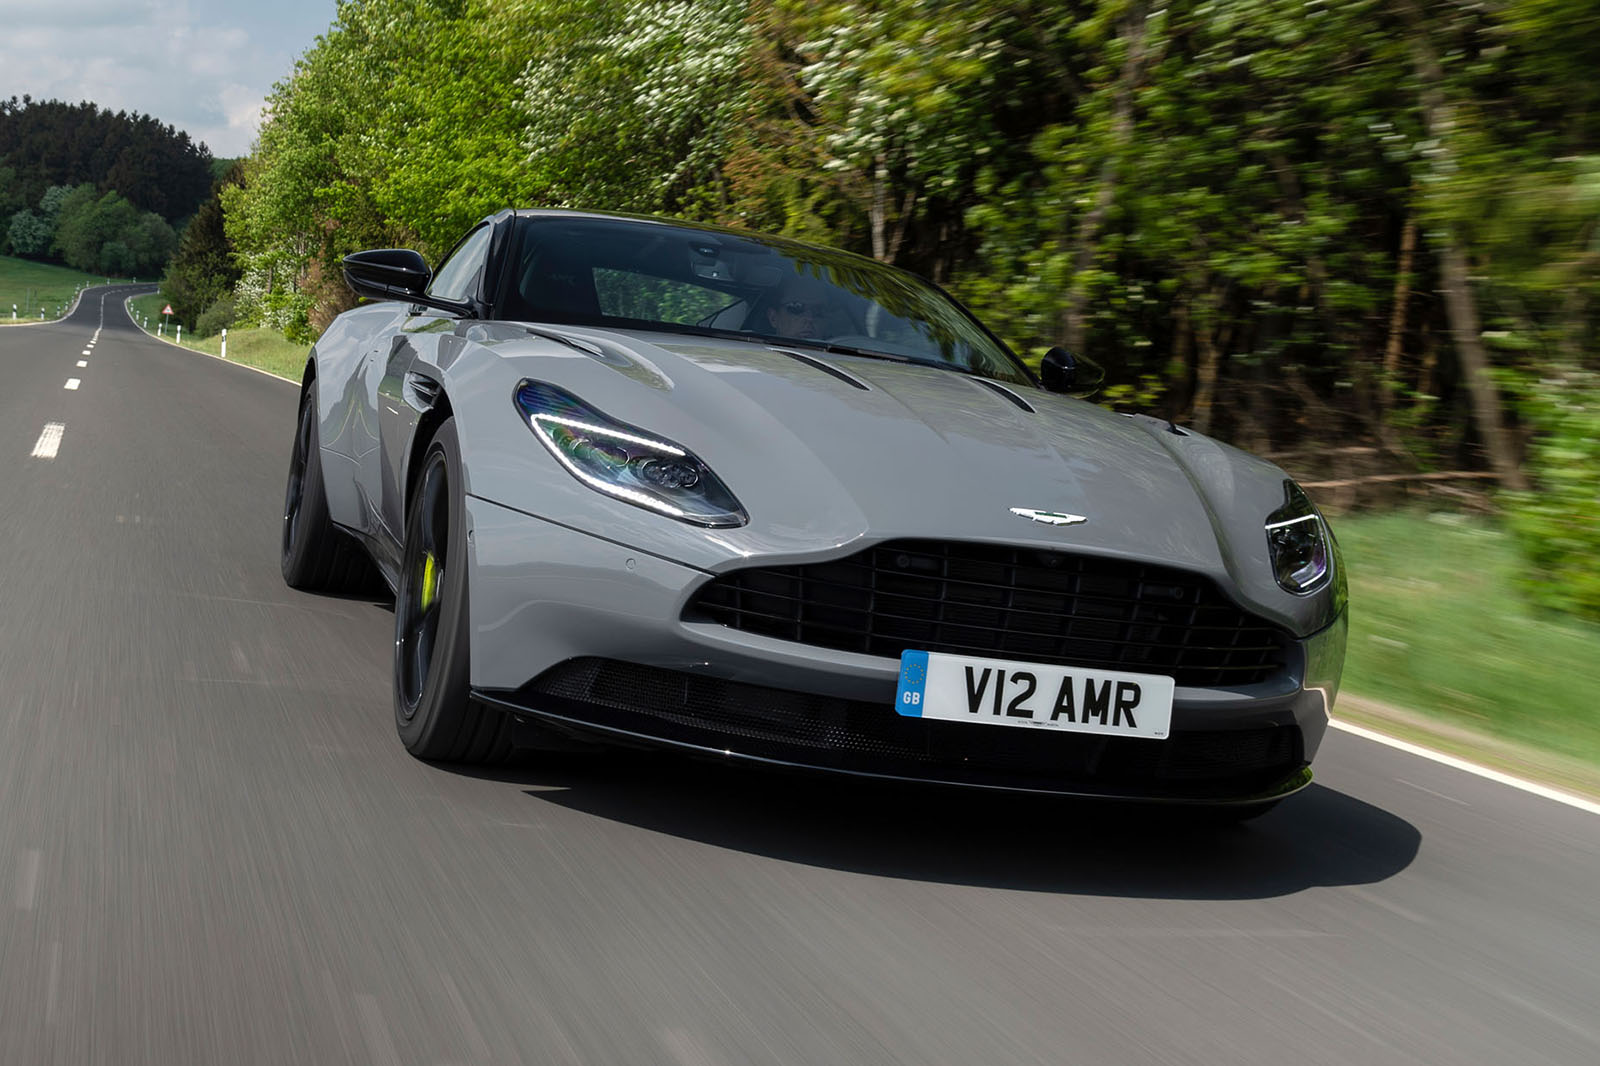 aston martin db11 amr 2018 review | autocar